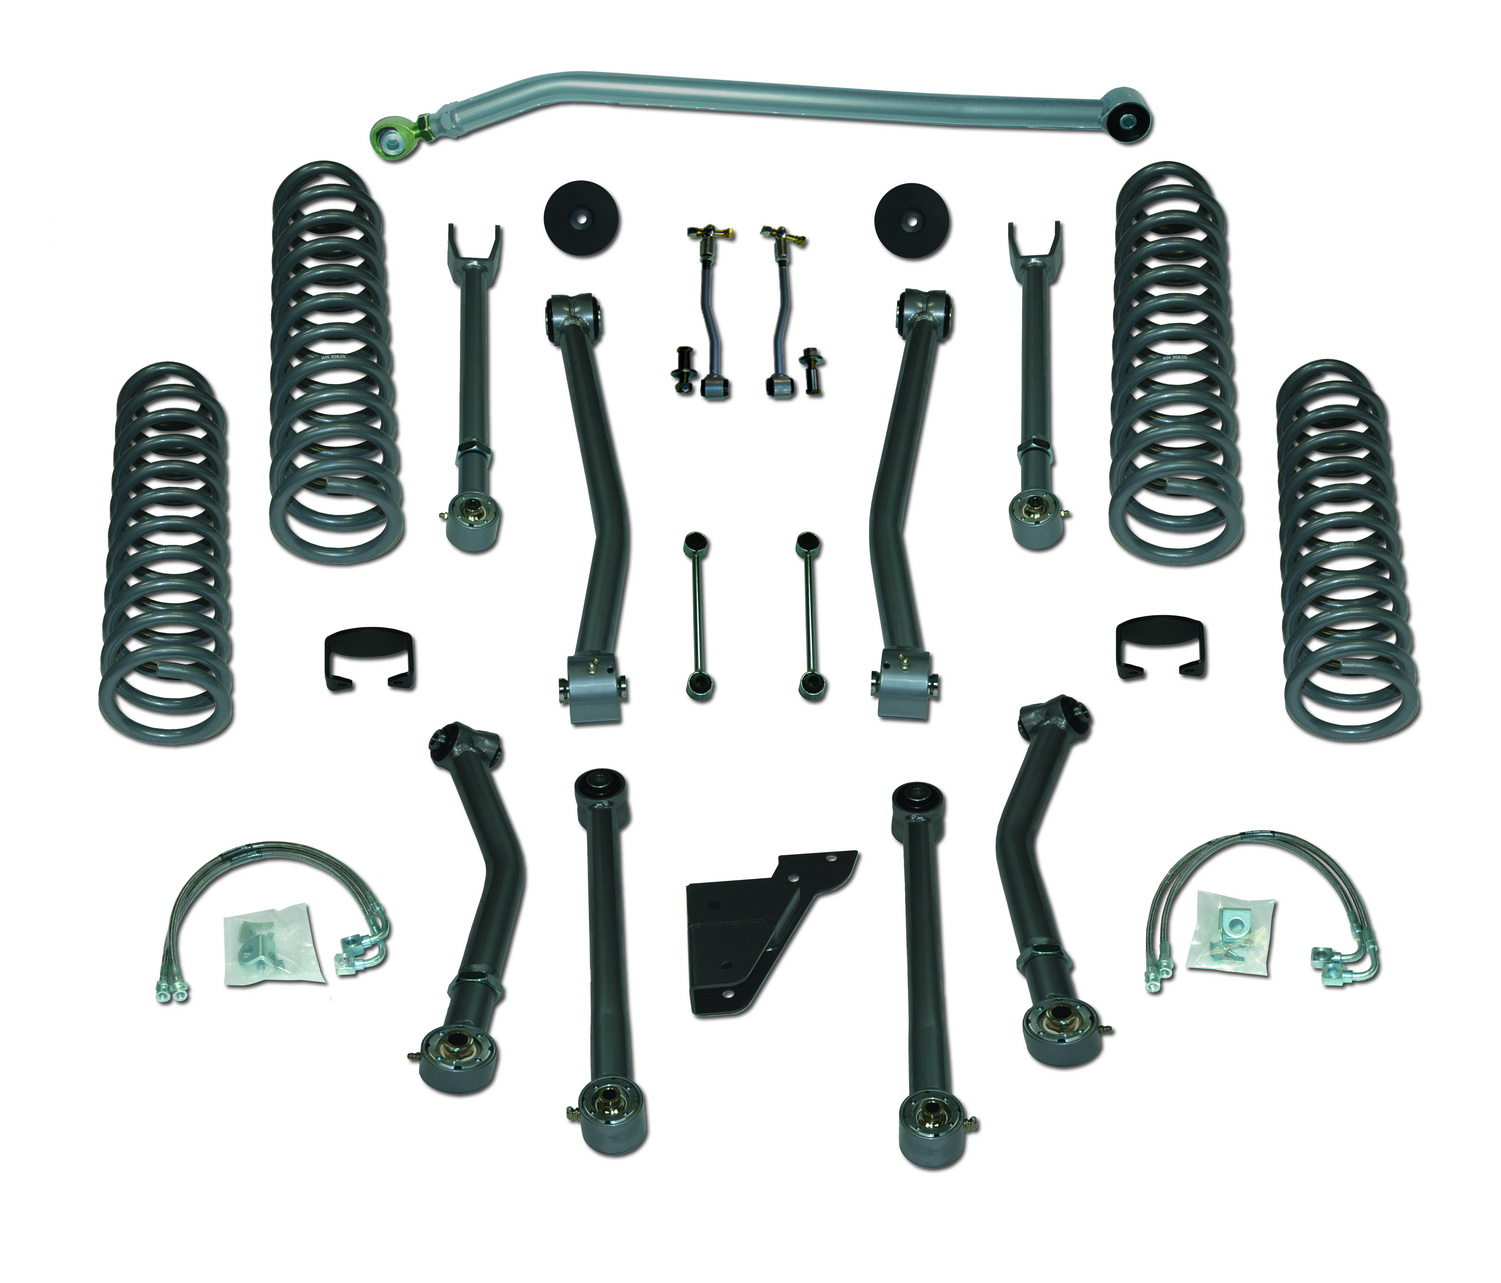 rubicon express re7143 super flex suspension lift kit 07 14 wrangler jk ebay